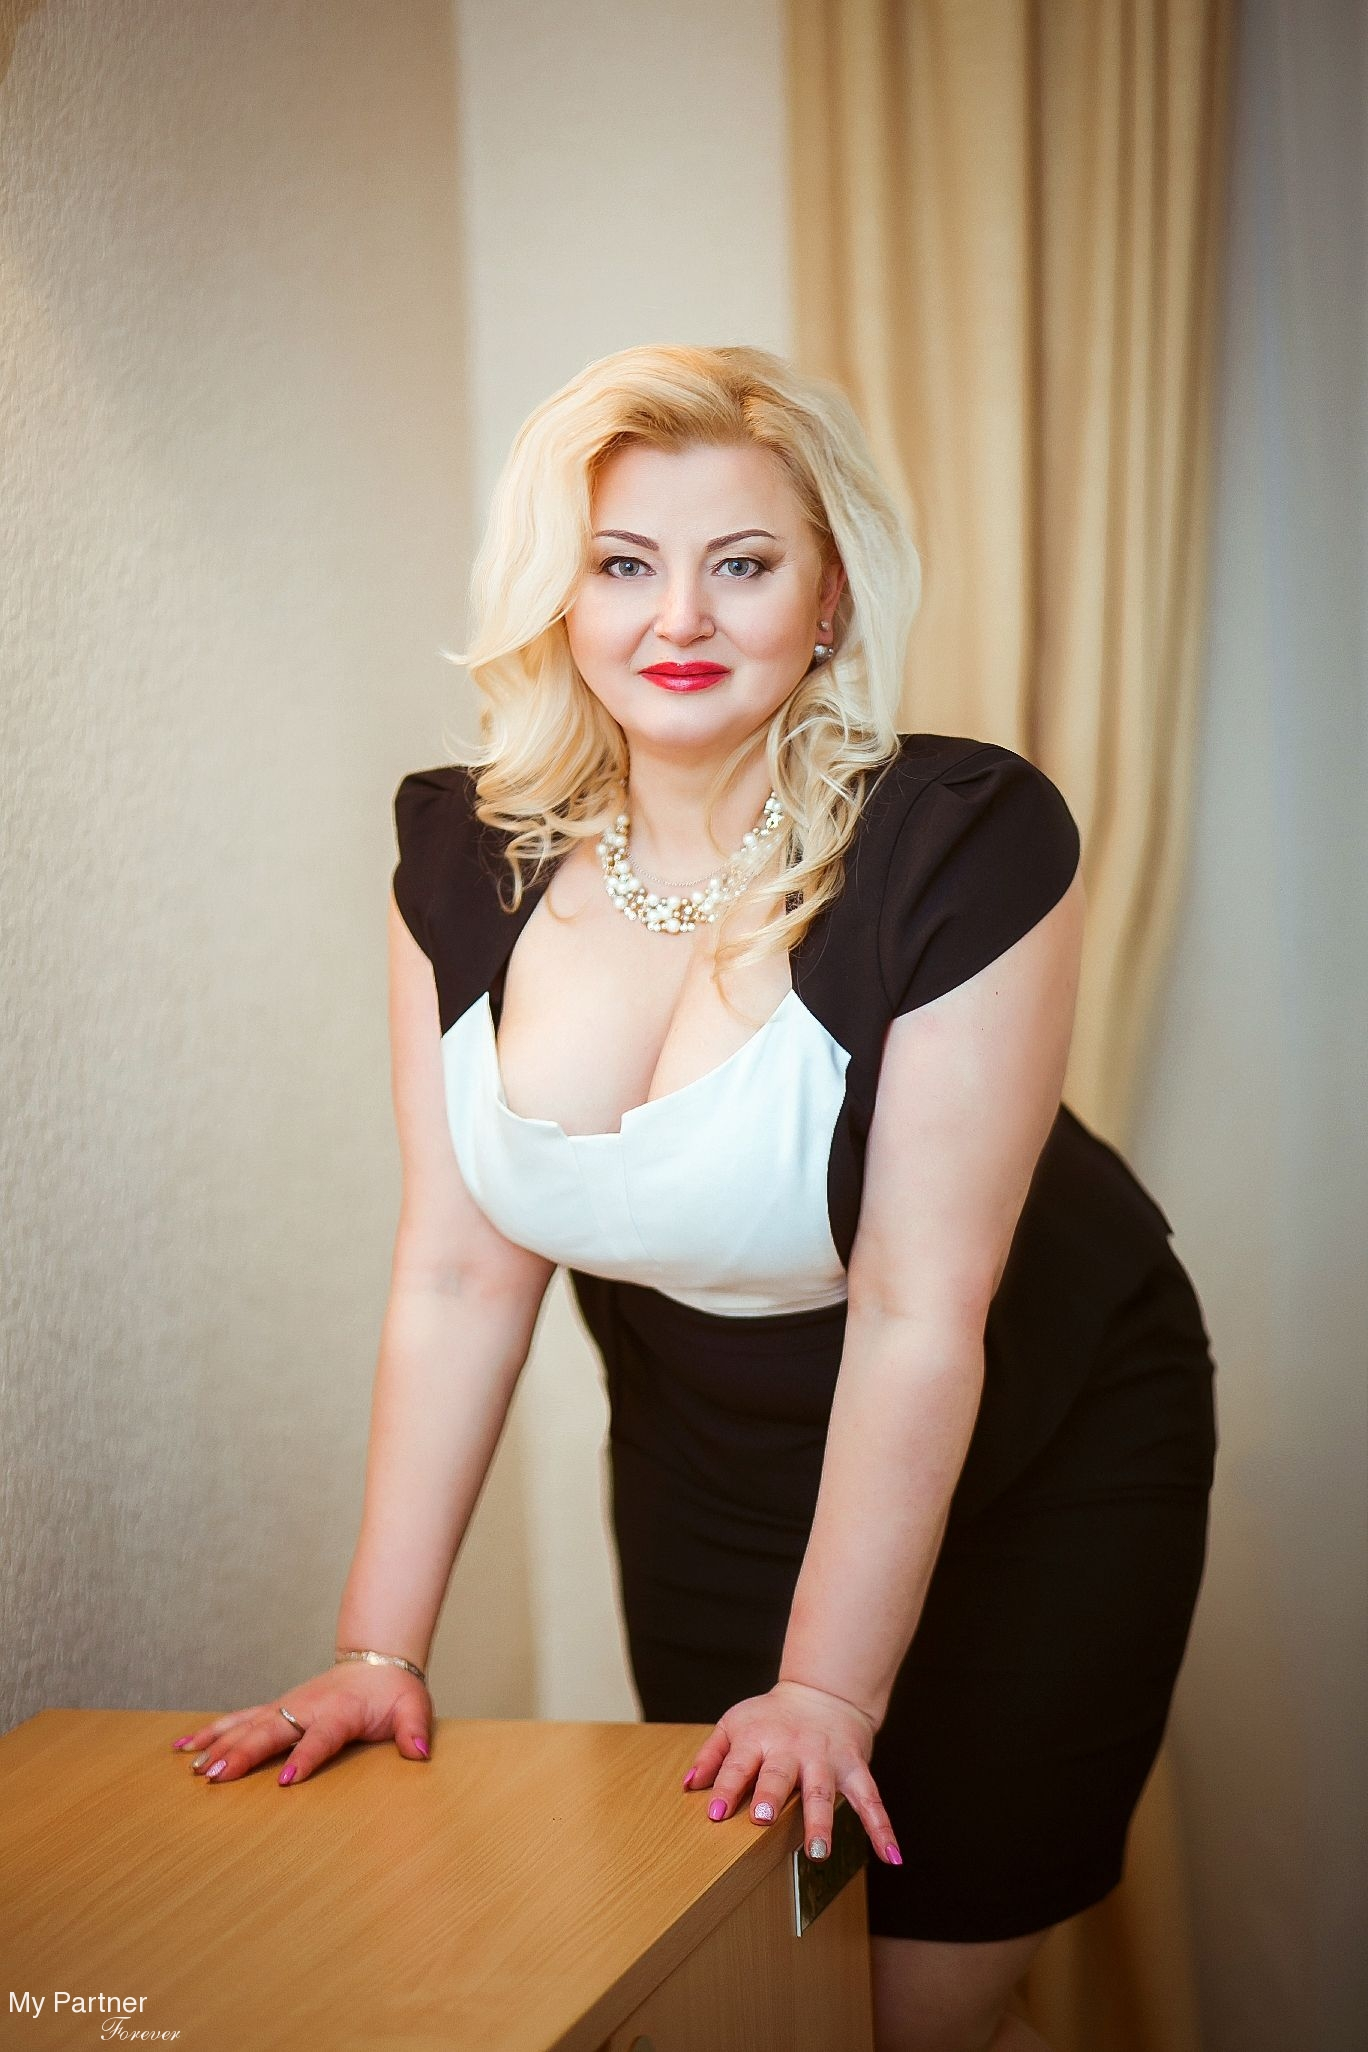 larisa catholic women dating site Marriage ukraine woman larisa from pavlograd with blonde hair 41 years old dating site ladadate of russian and ukrainian brides.